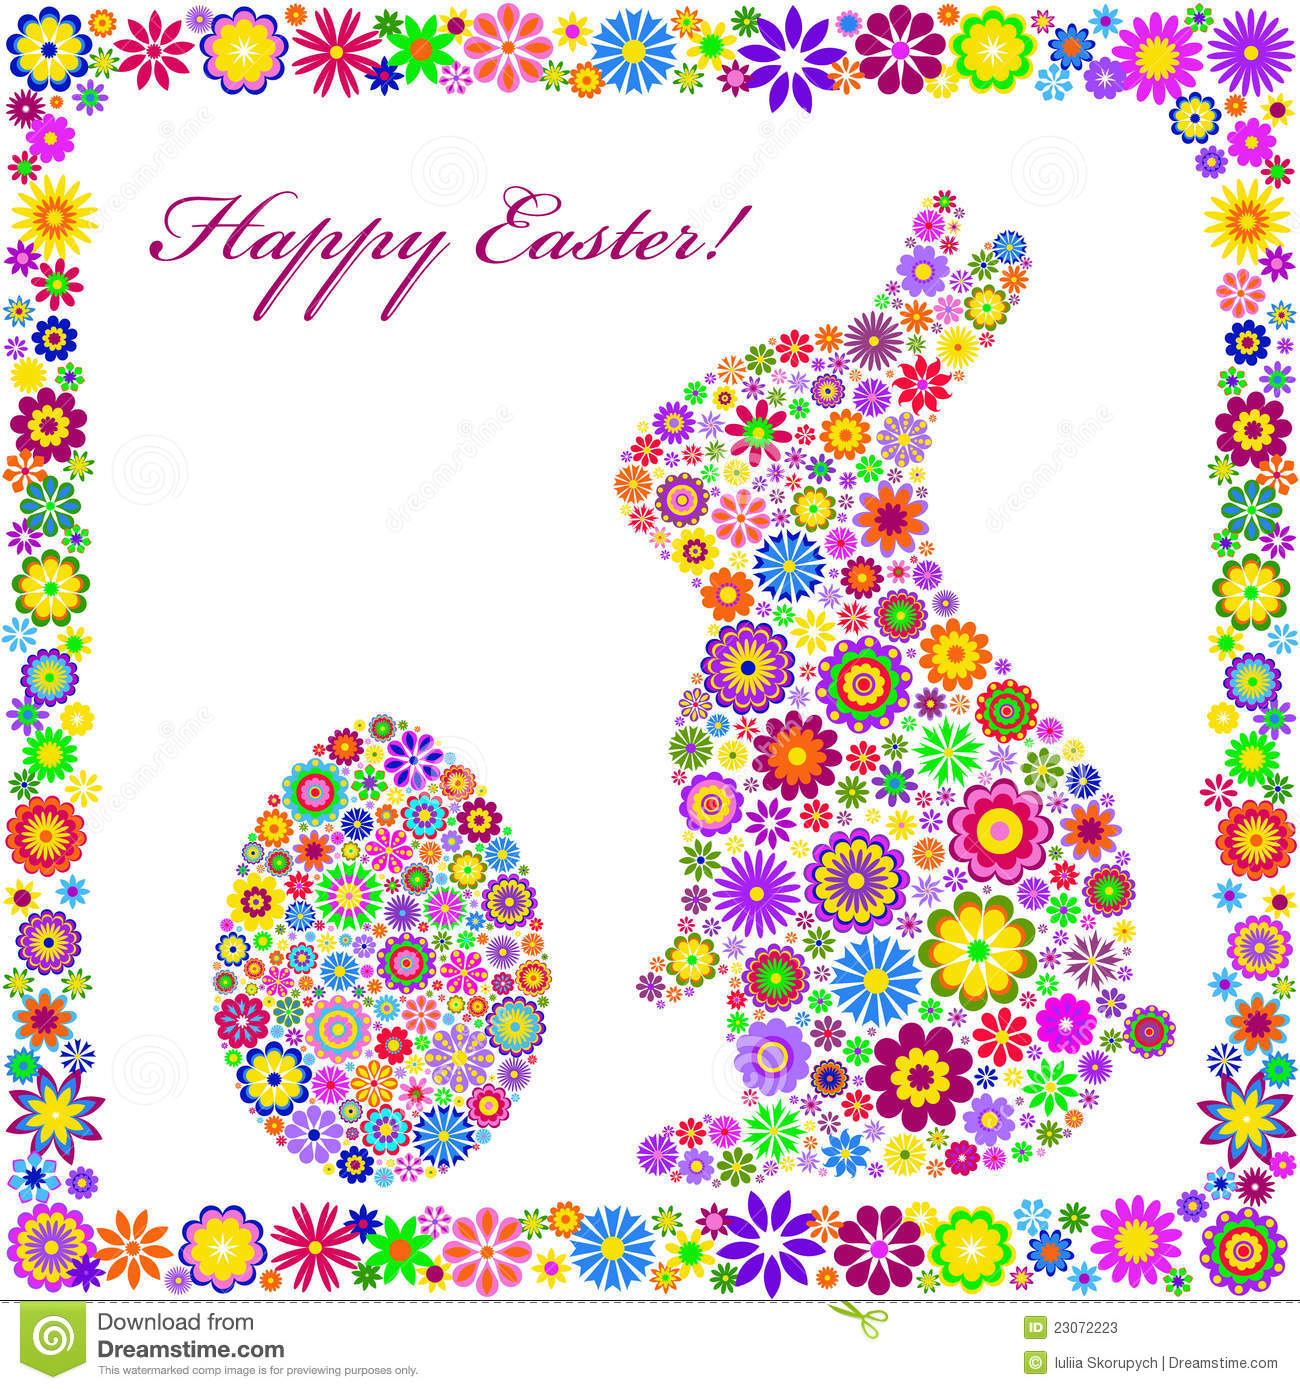 Colorful Easter Card On White Background Photos Image – Easter Card